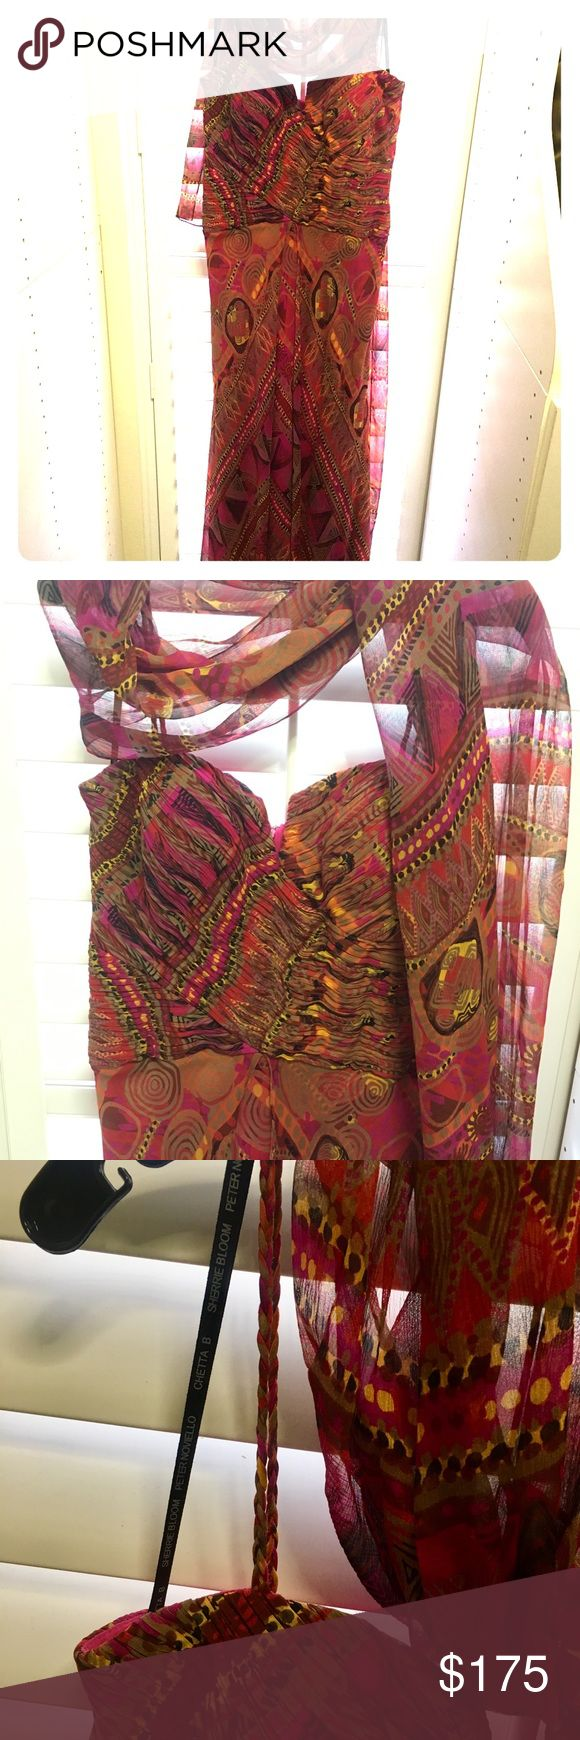 Tribal print long dress by Chetta B Stunning 100% silk, tribal print, long dress. The colors are so beautiful together and unexpected. Browns, fuchsia, golden yellow. Bottom has a separated skirt that gives beautiful, flowing movement. Spaghetti straps are braided from the silk fabric. Comes with matching wrap. CHETTA B Dresses